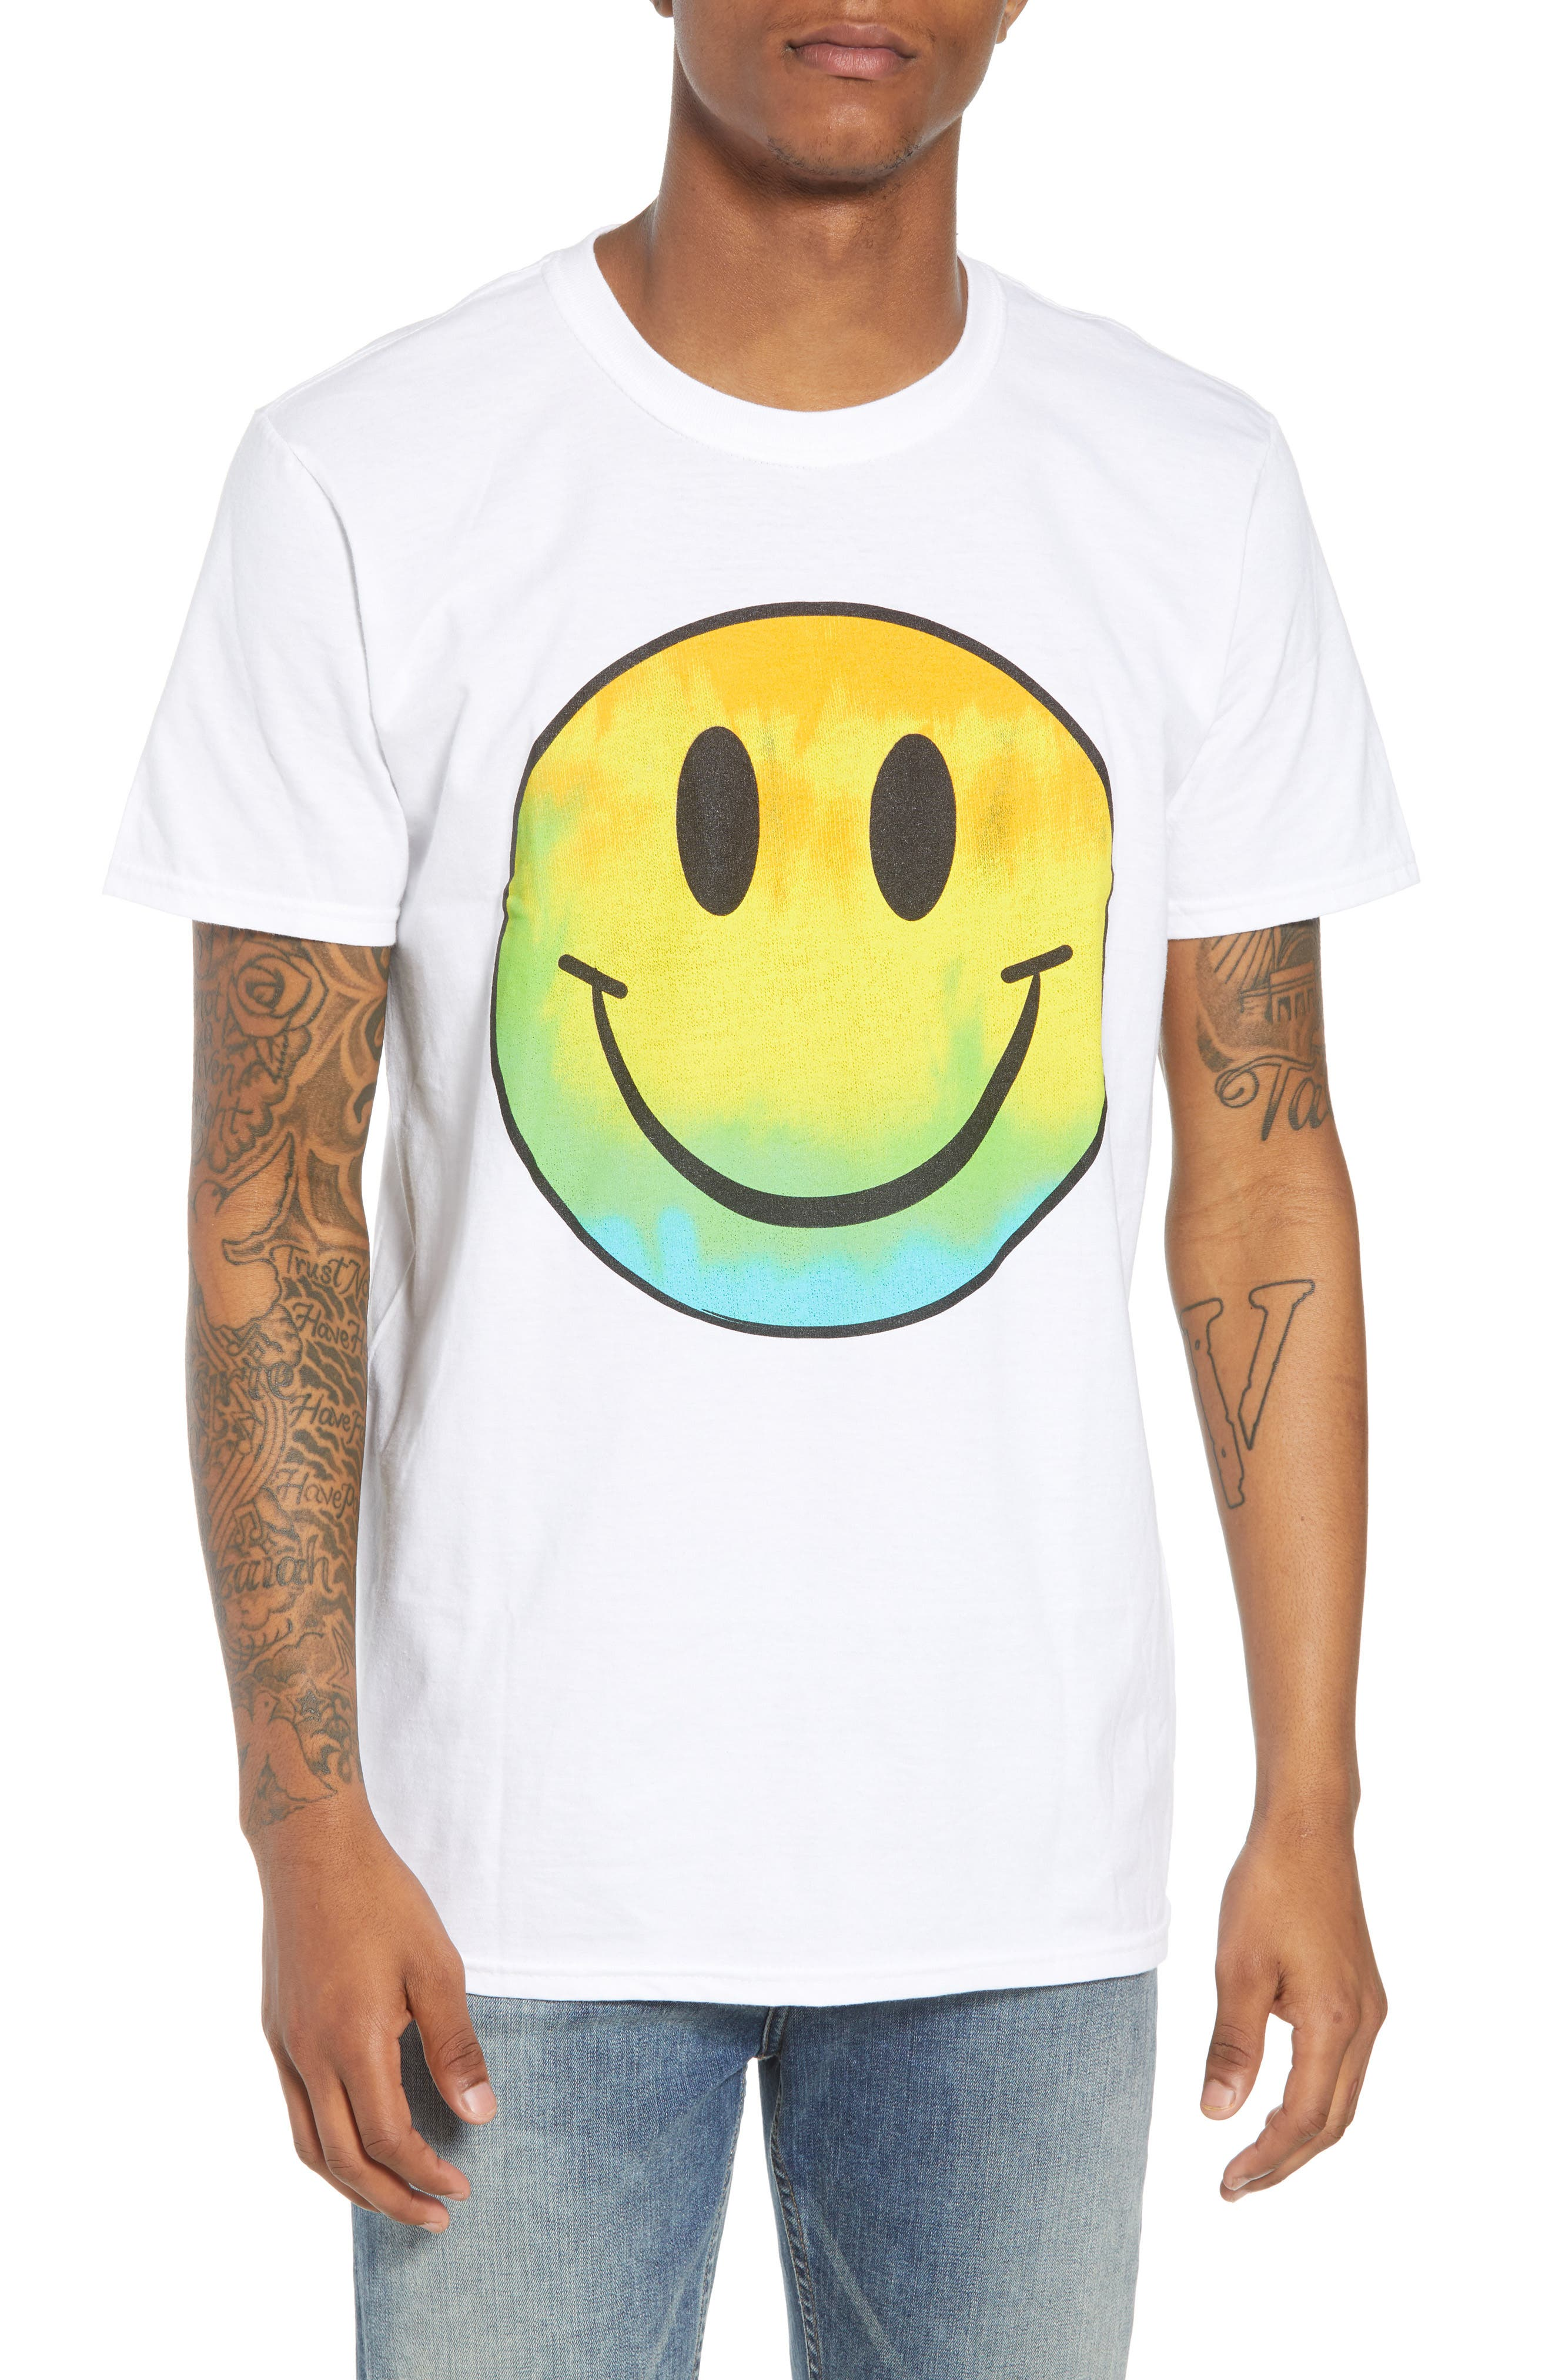 Tie Dye Smiley Face T-Shirt,                             Main thumbnail 1, color,                             WHITE TIE DYE SMILEY FACE